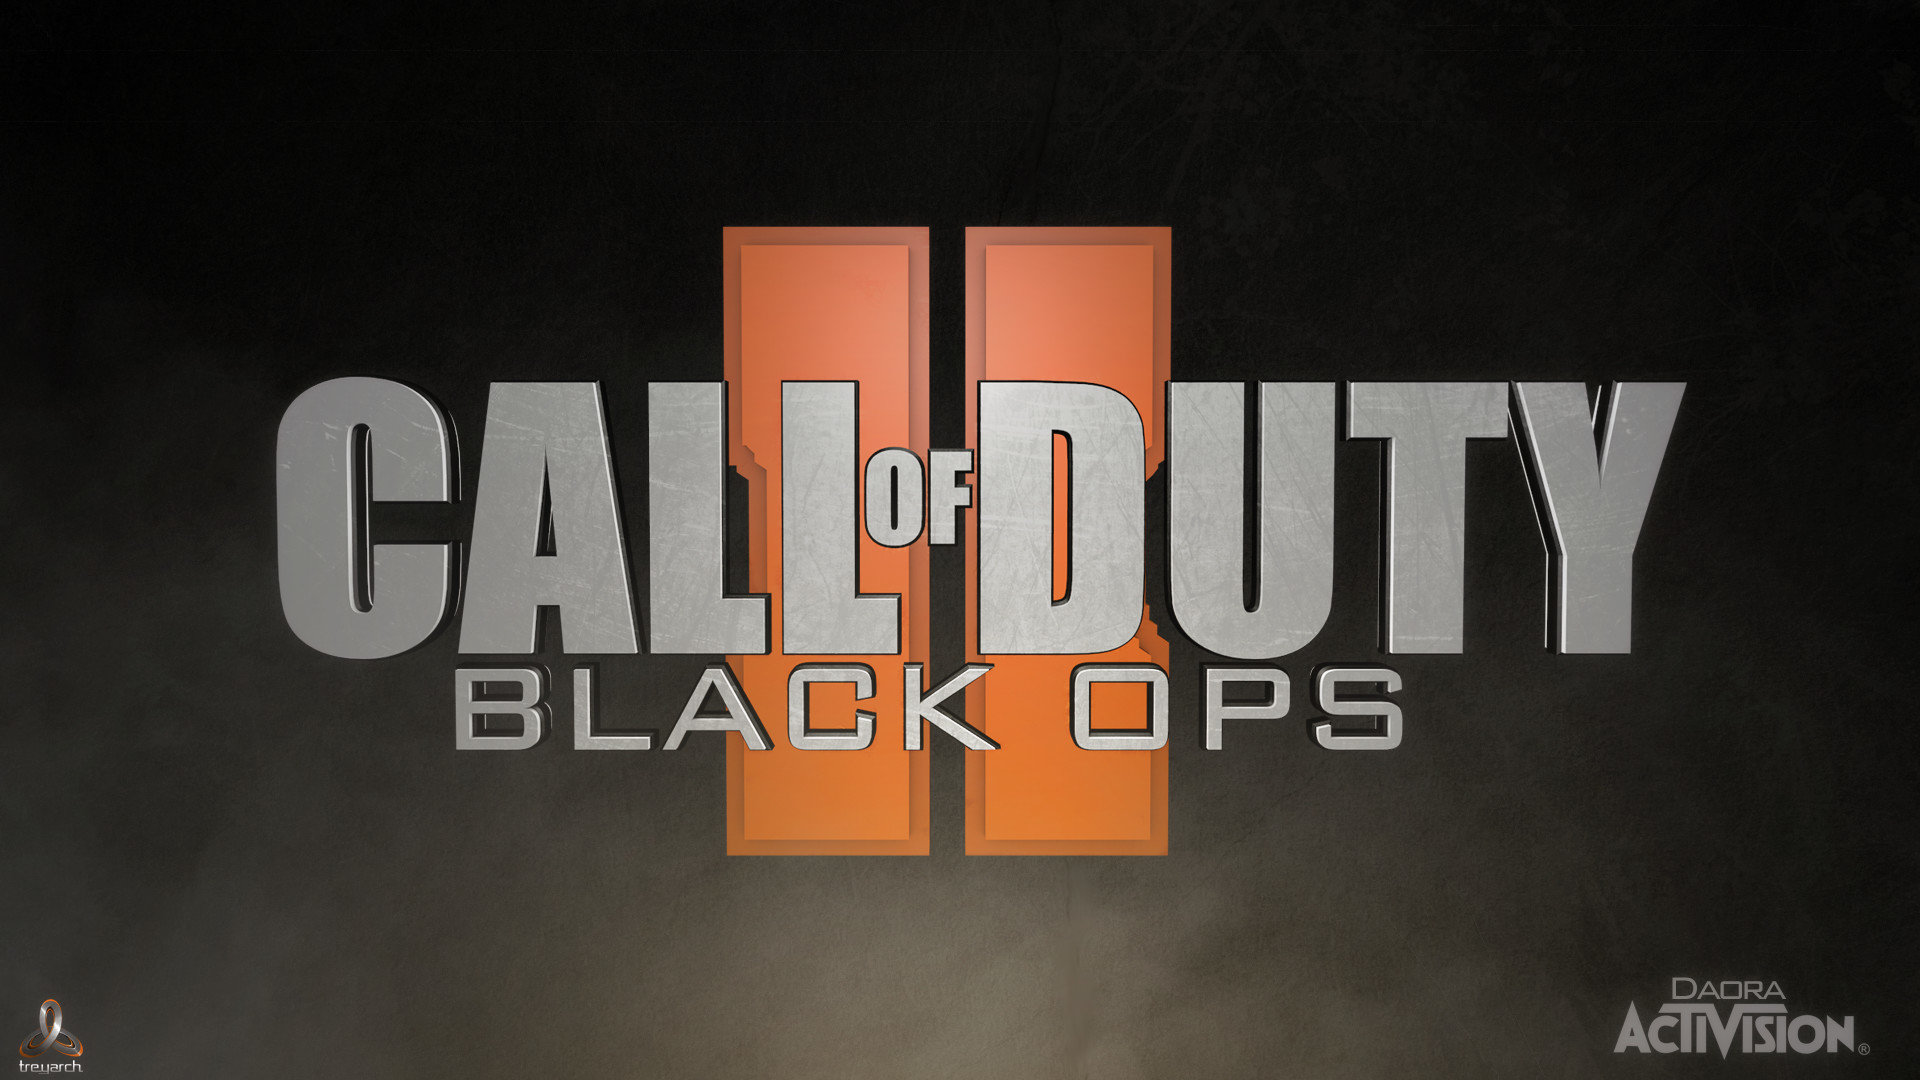 Awesome Call Of Duty Black Ops 2 Free Wallpaper ID187666 For Full Hd 1920x1080 PC